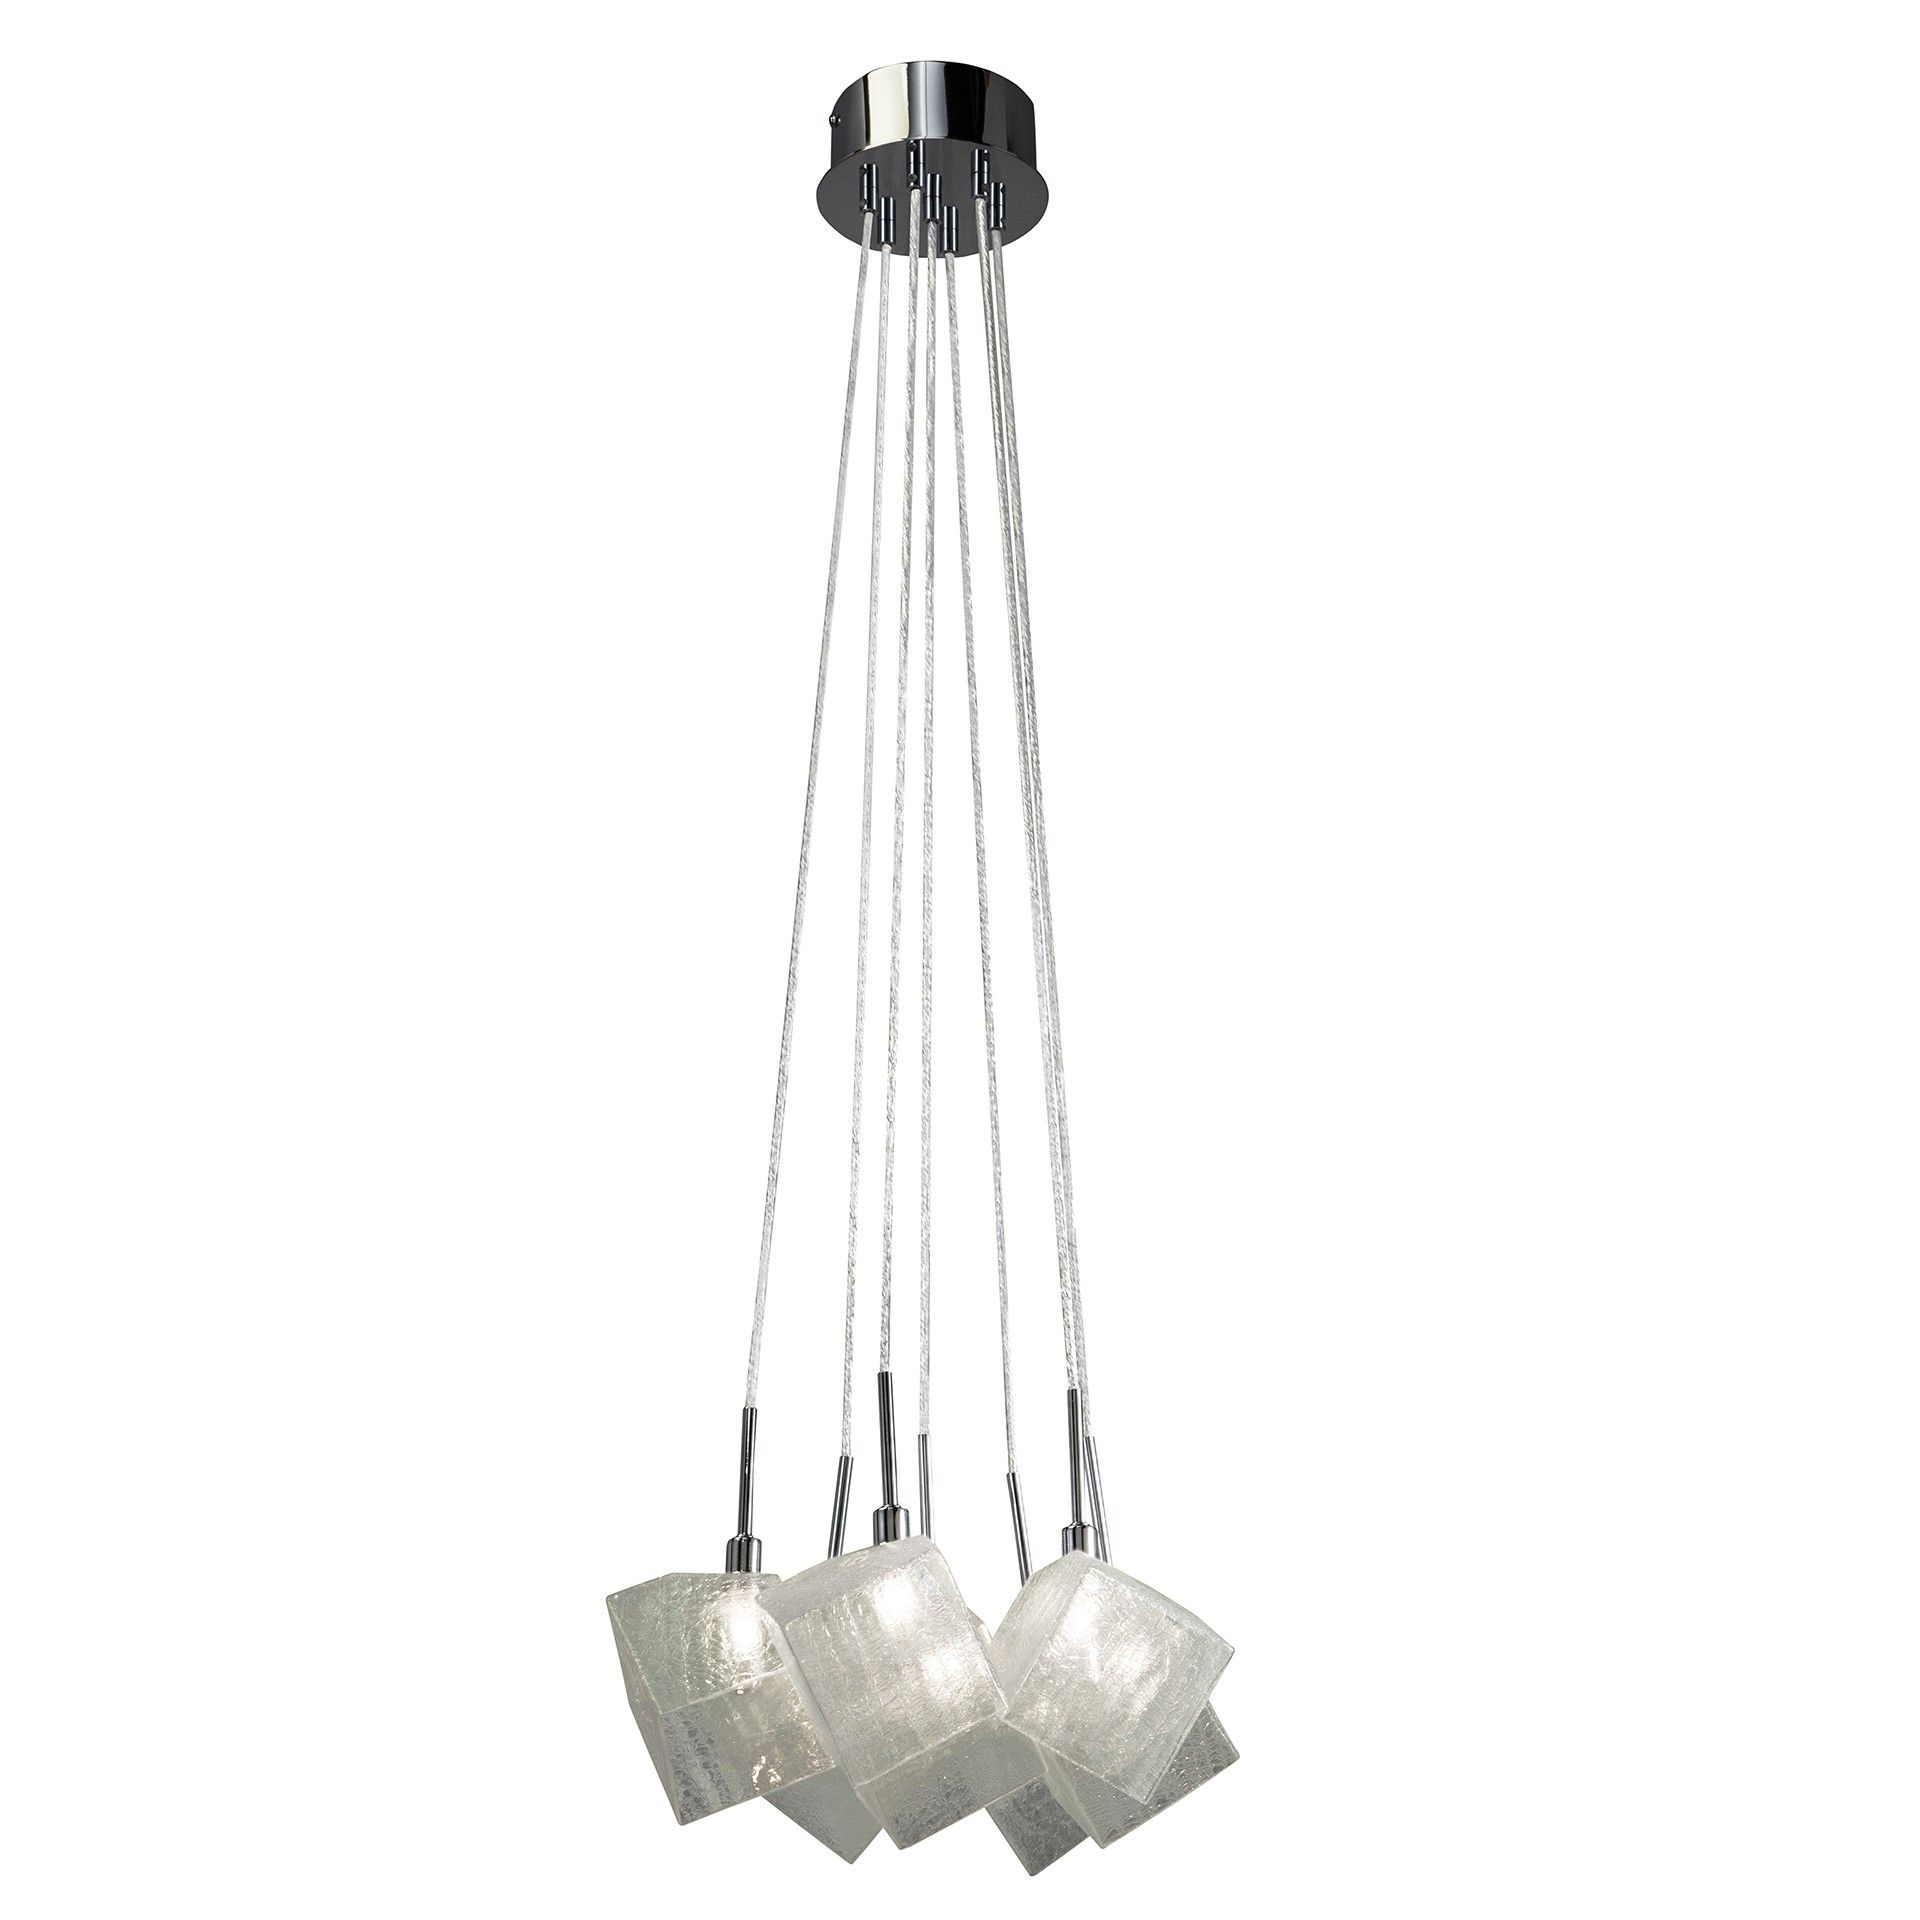 Elan Icekubez 83268 Chandelier - Chrome Finish with Clear Crackle ...